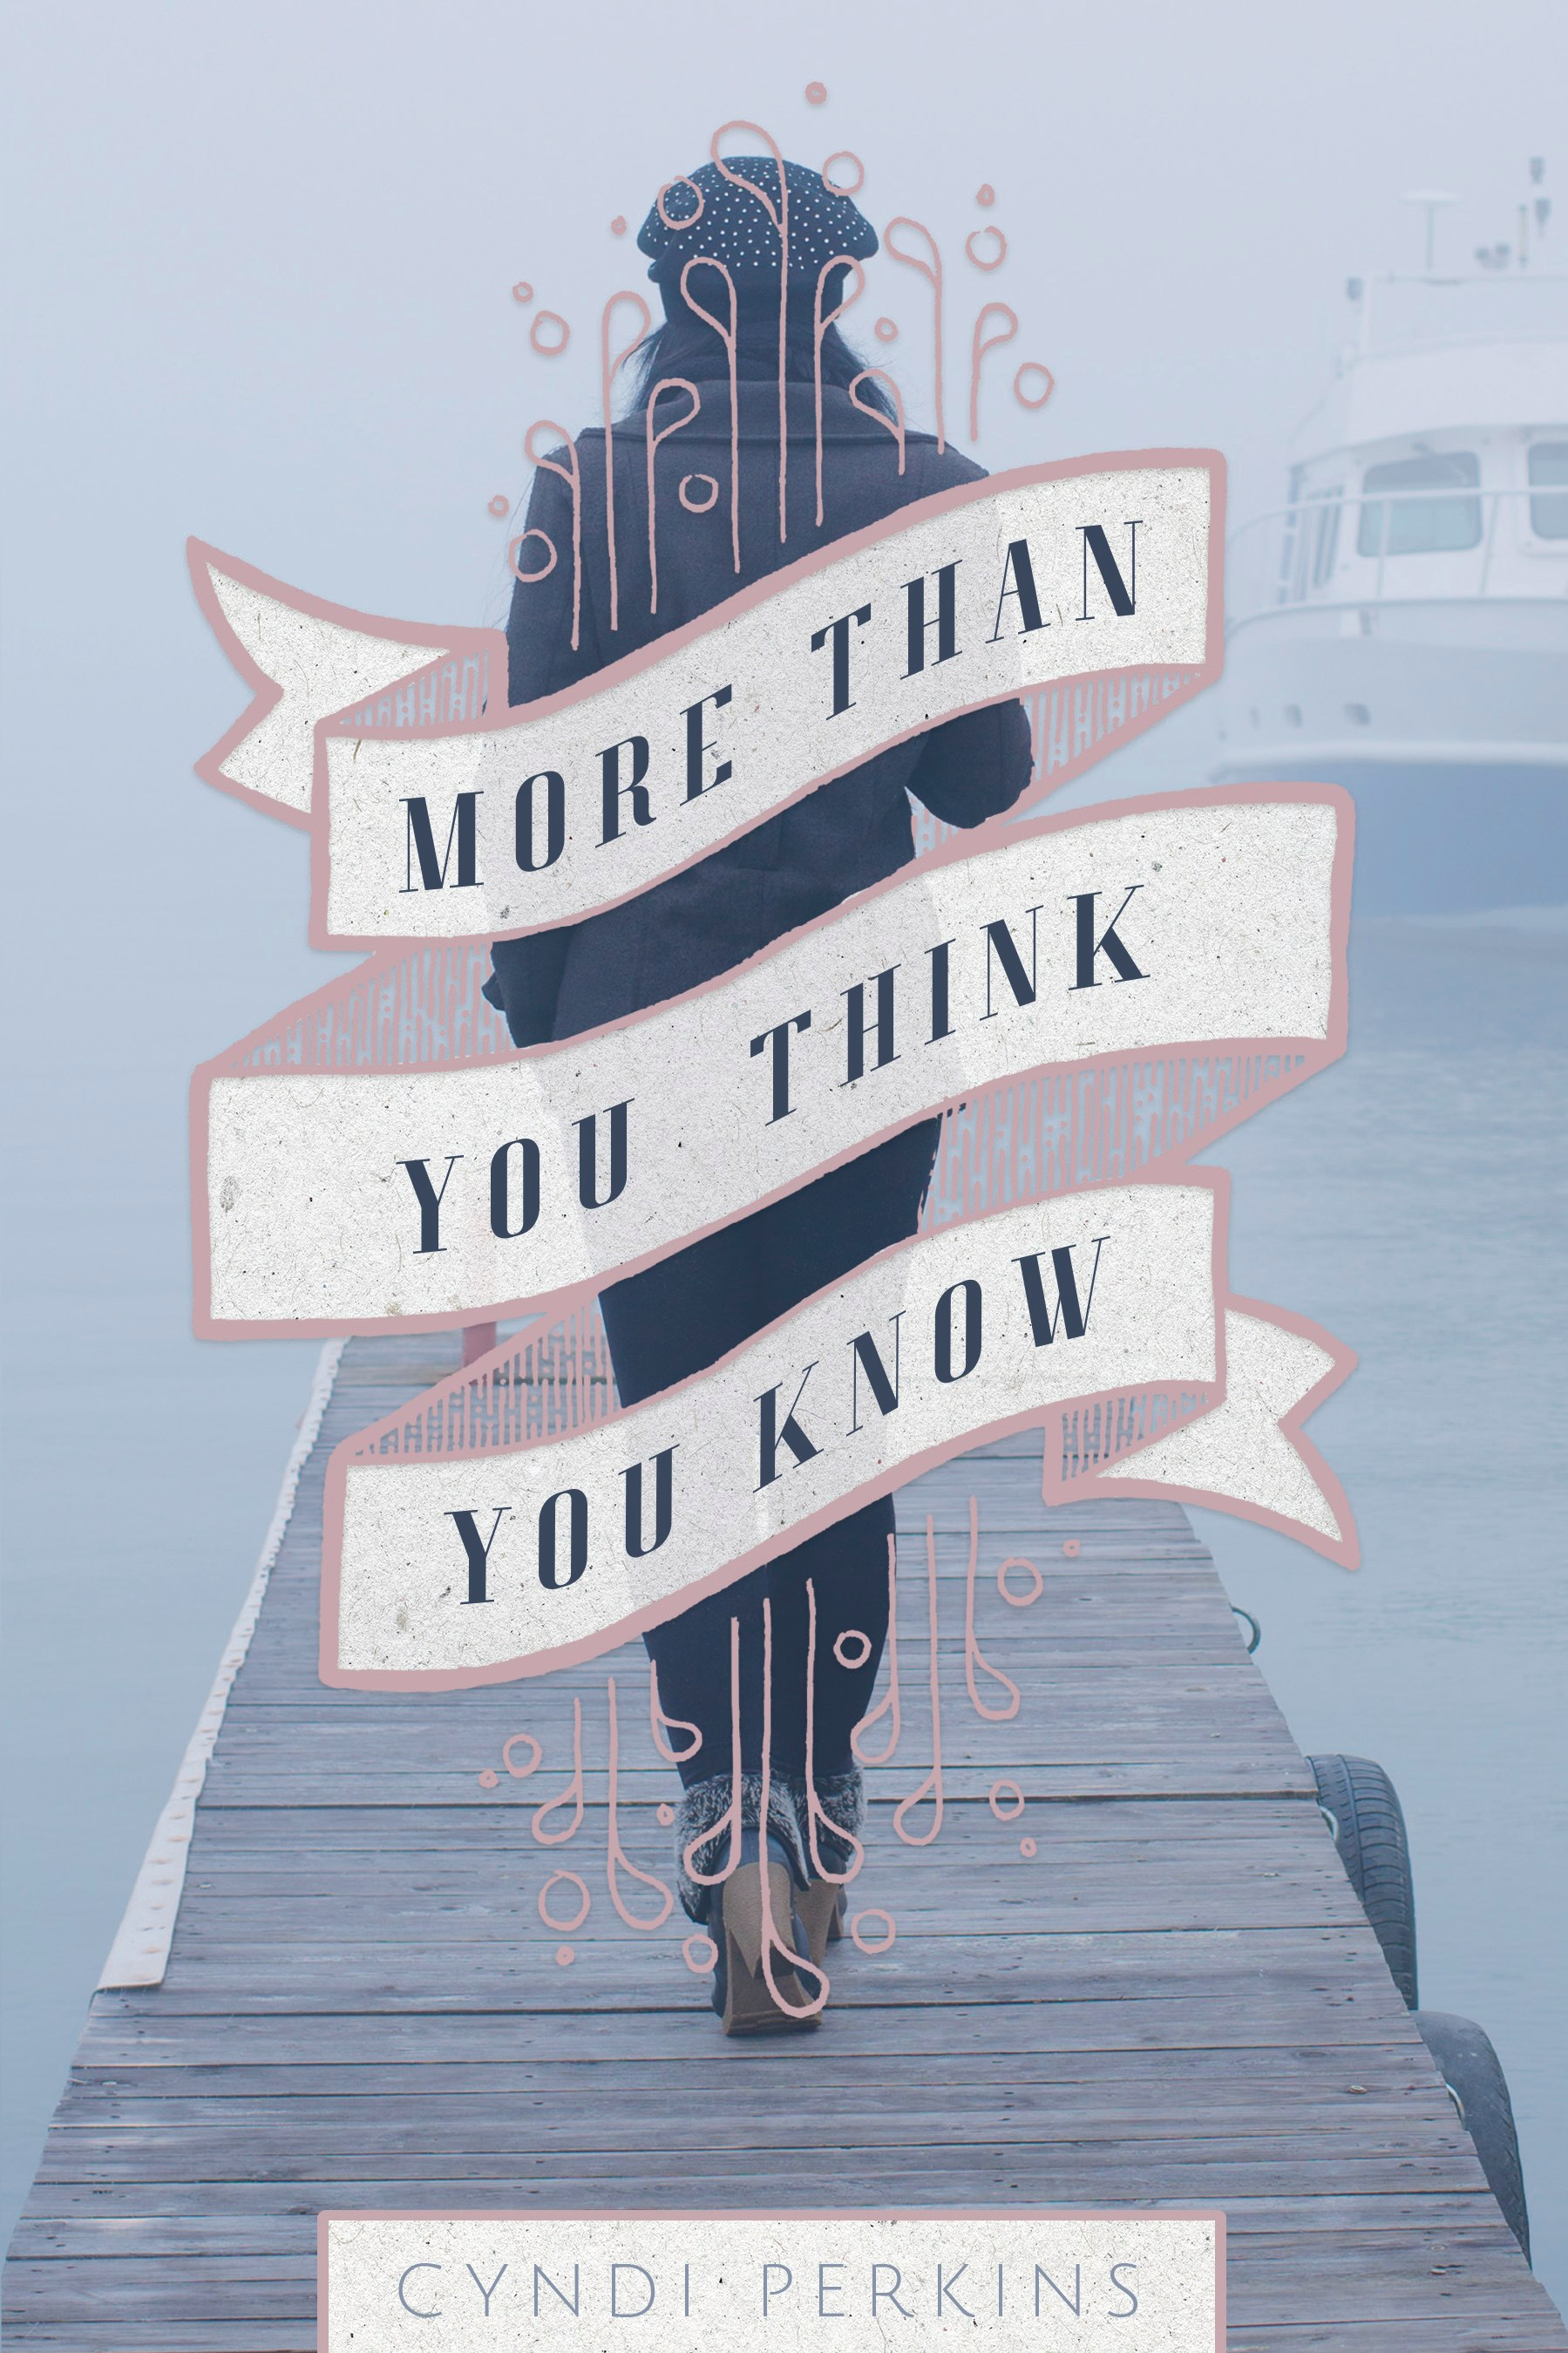 More Than You Think You Know, a debut novel by Cyndi Perkins, is released by Beating Windward Press in 2017